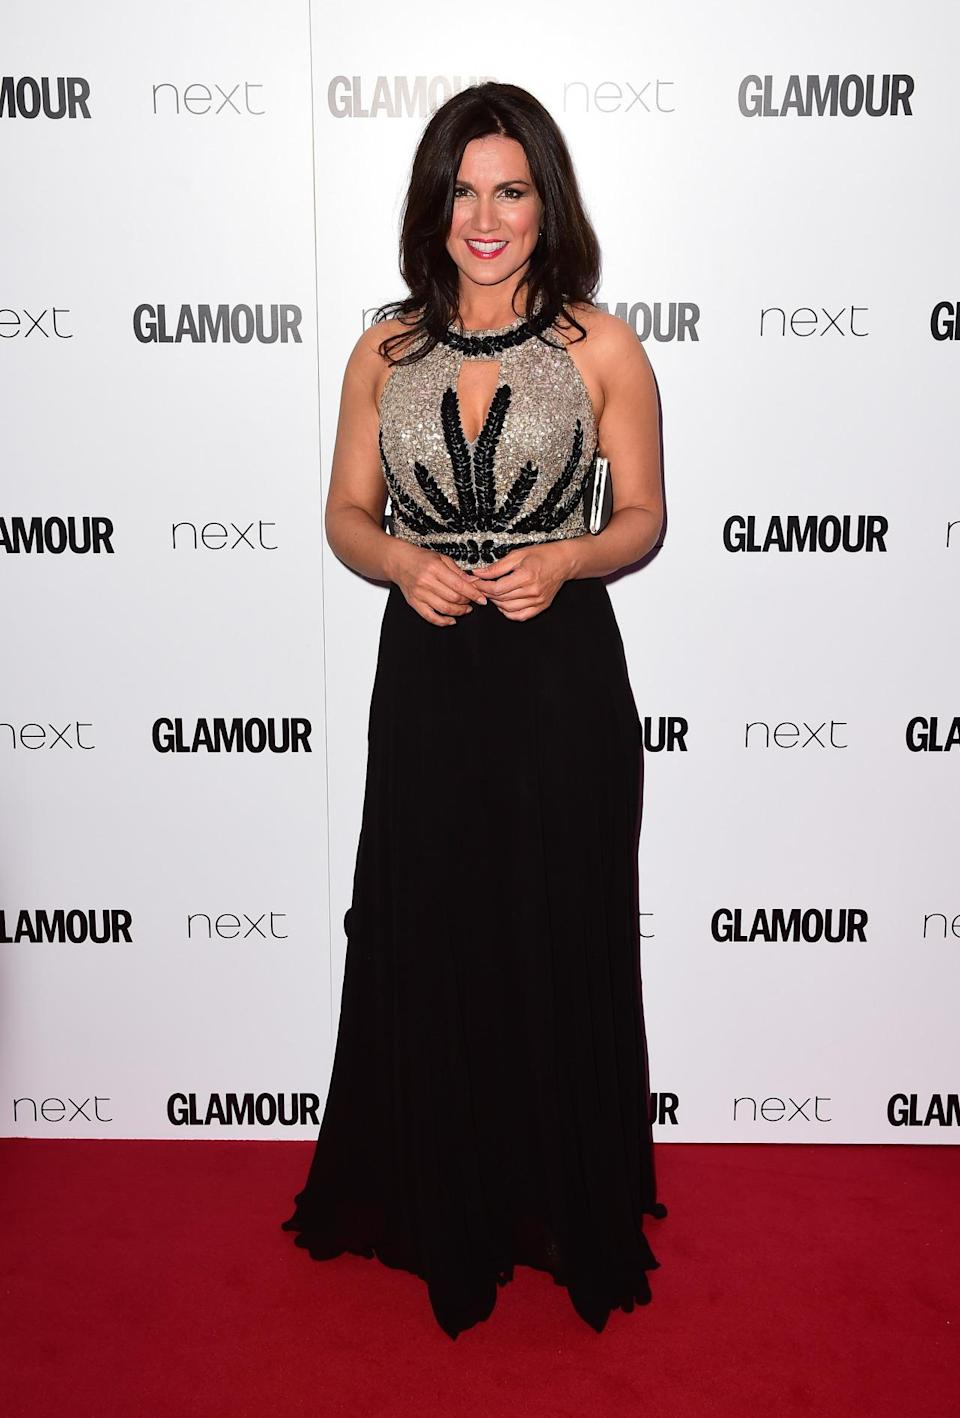 <p>The TV presenter dazzled in an embellished top and black floor-sweeping skirt. <i>[Photo: PA Images]</i></p>